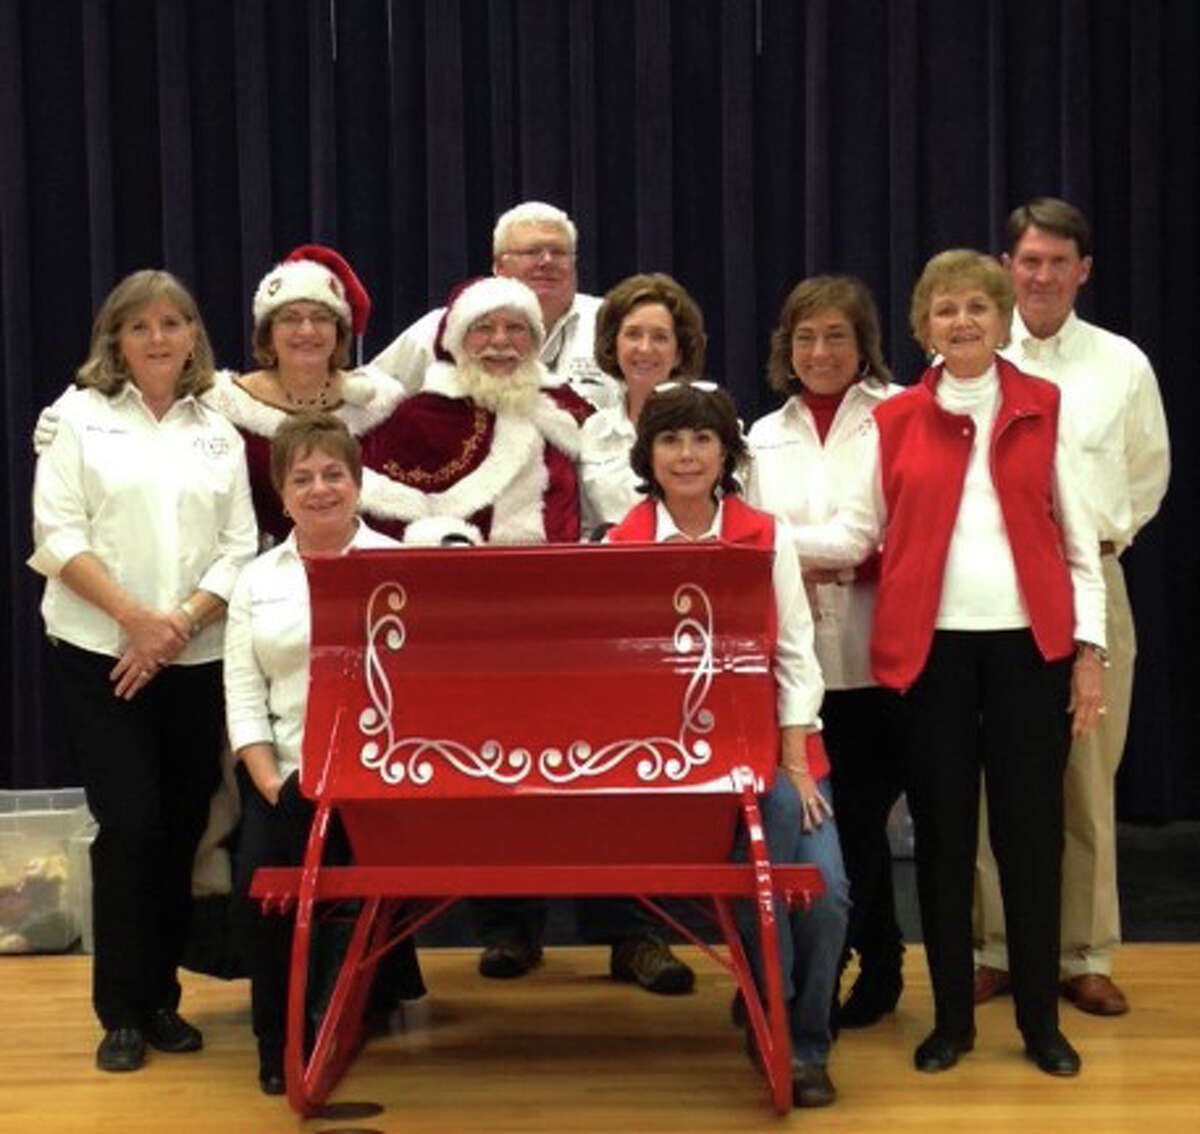 The members of the Liberty County Child Welfare Board are getting into the spirit of Christmas. Pictured left to right are (front row) Cyndie Abshire, Becky Dearmore; (middle row) Marilyn Gilliland, Mrs Claus, Santa, Donna Hebert, Mary Kay Hicks, Ena Stoesser; and (back row) Wendell Null, Dr David Arnold. Not pictured are John Hebert and Donna Burt.